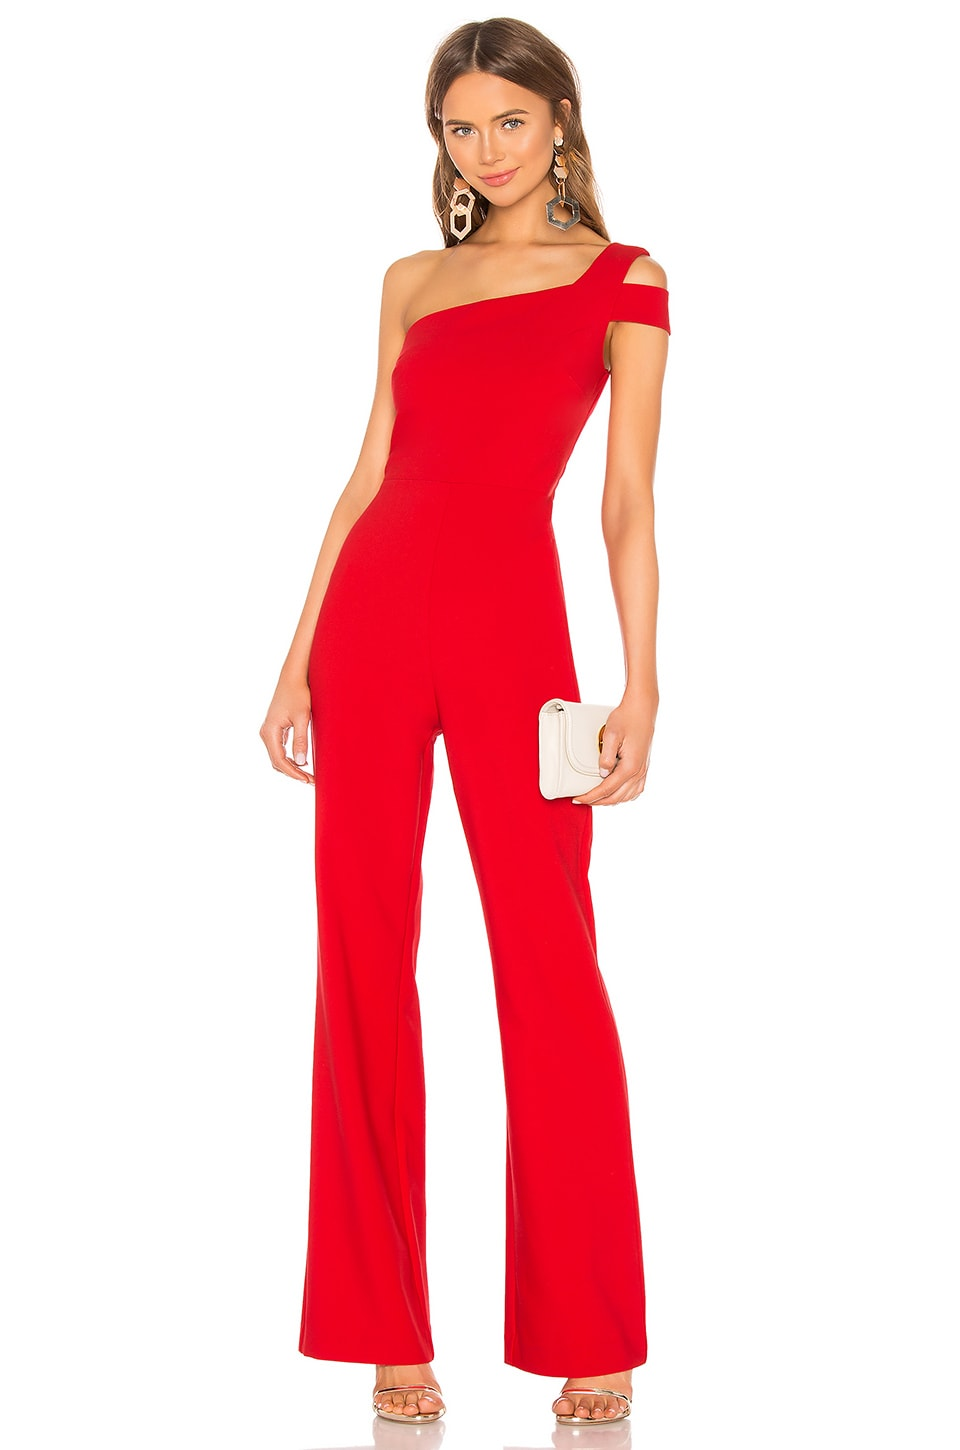 LIKELY Maxson Jumpsuit in Scarlet